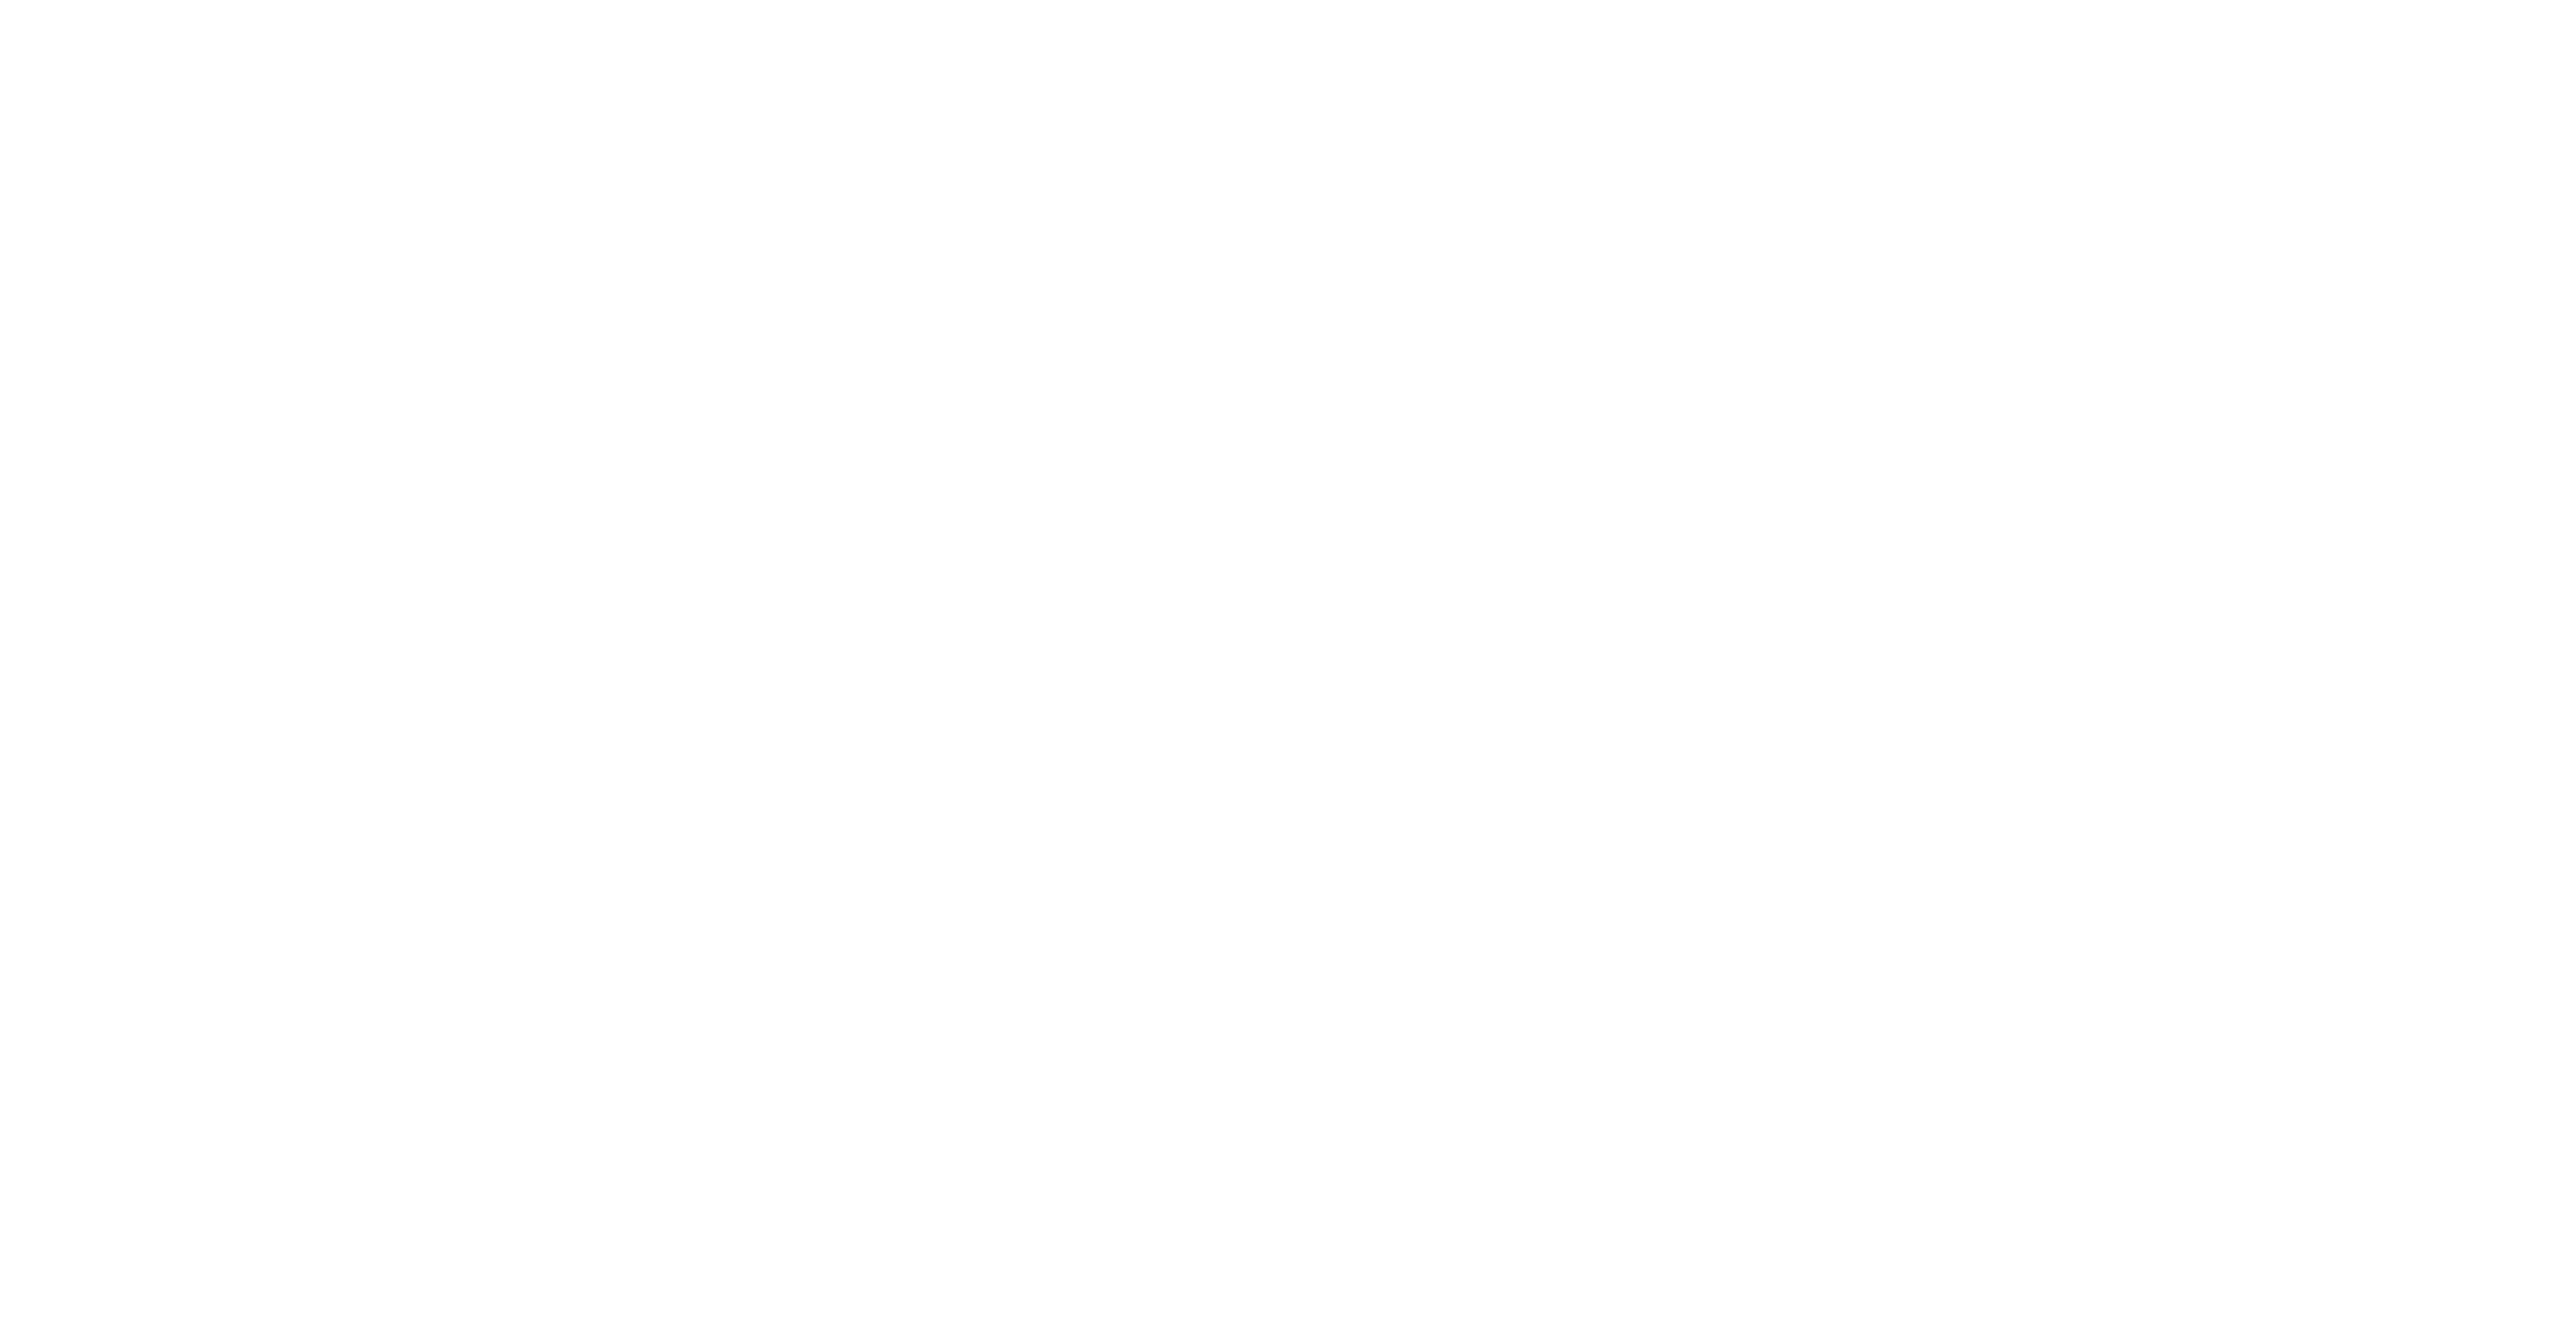 Morgan & Barbary, Your Legal Problem Solvers